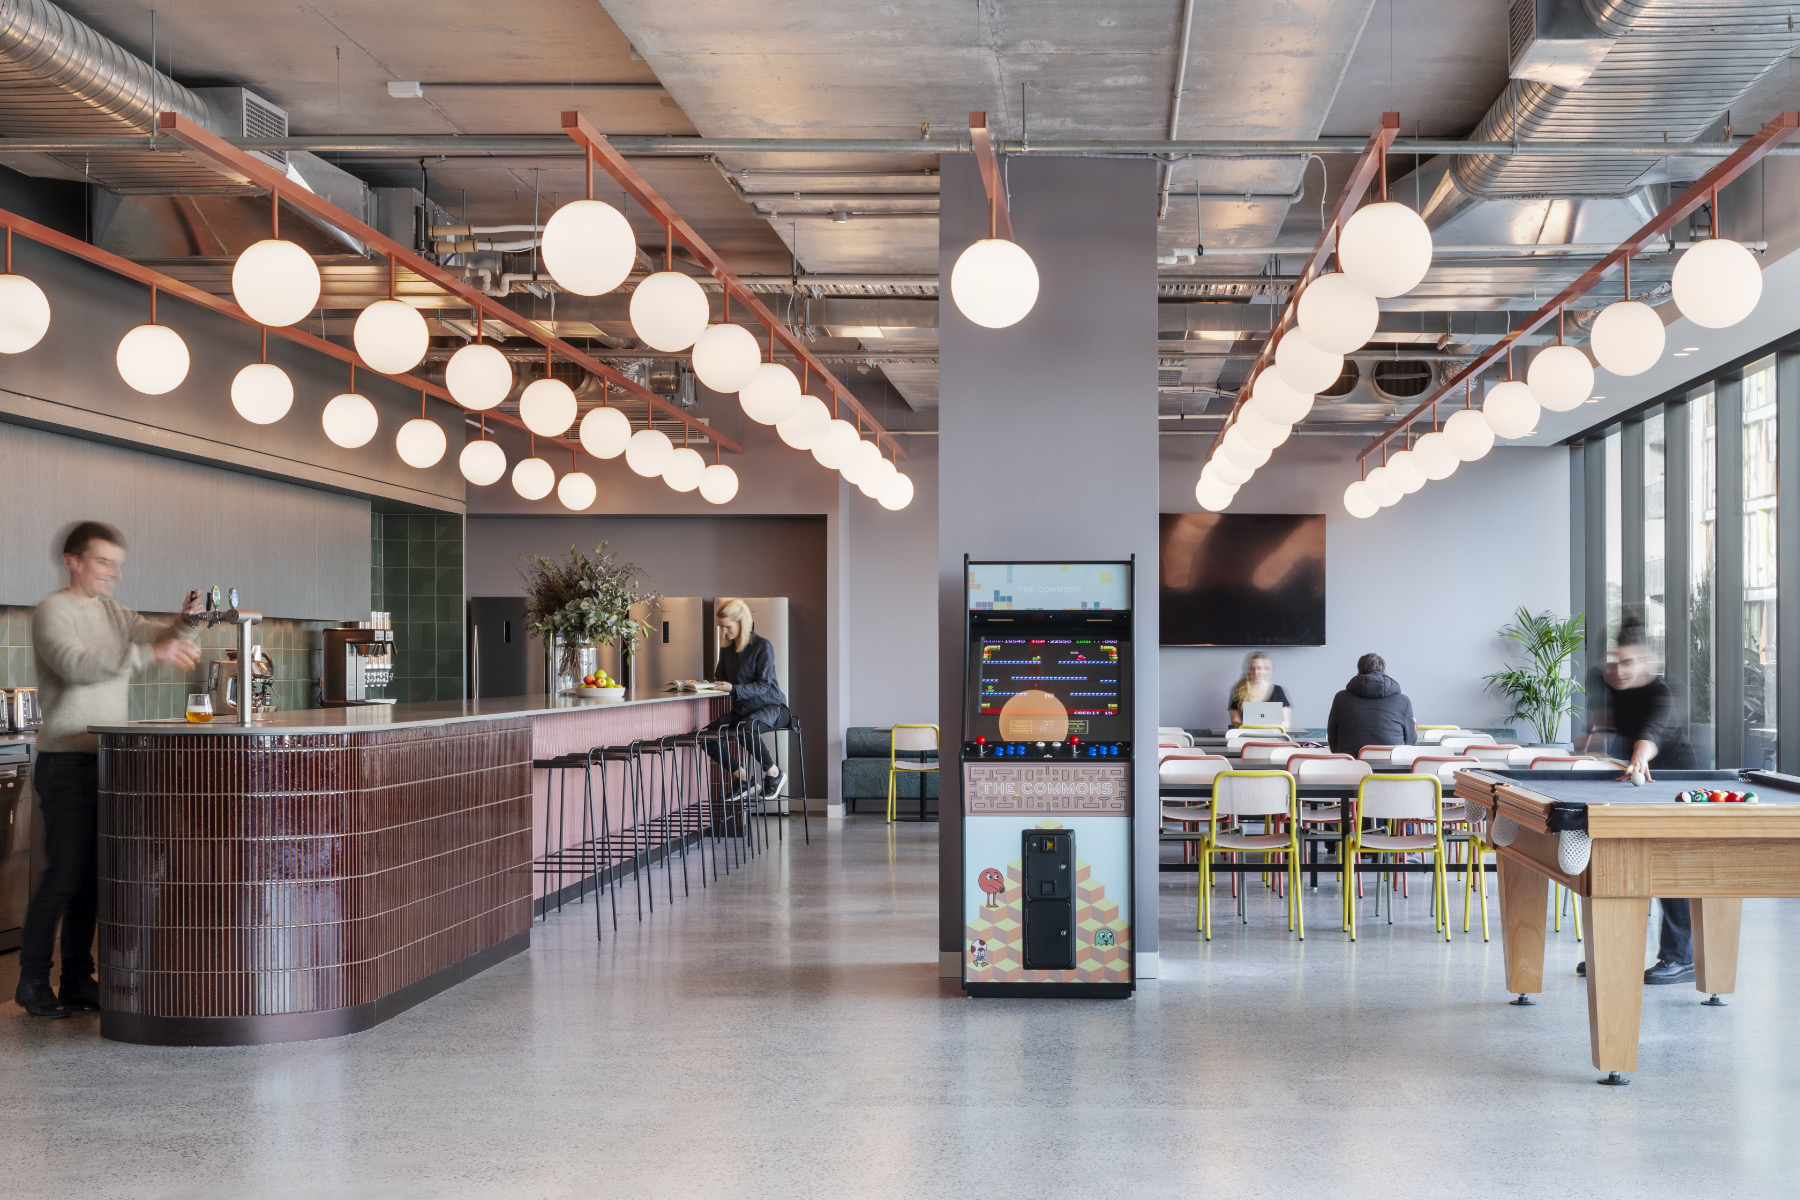 A Tour of The Commons' New South Yarra Coworking Space